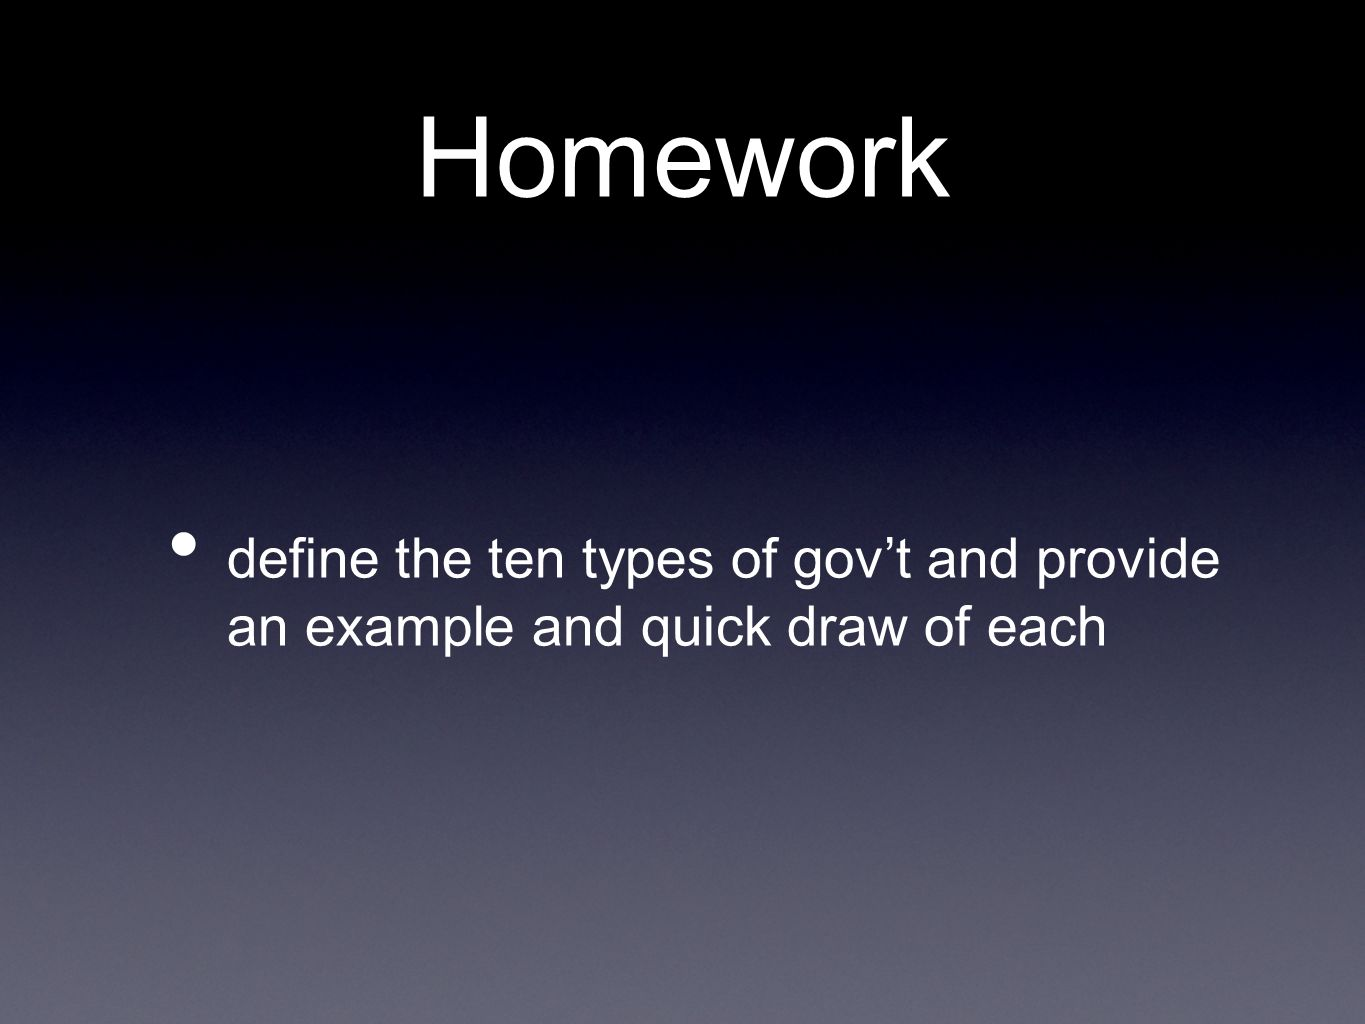 Homework define the ten types of govt and provide an example and quick draw of each